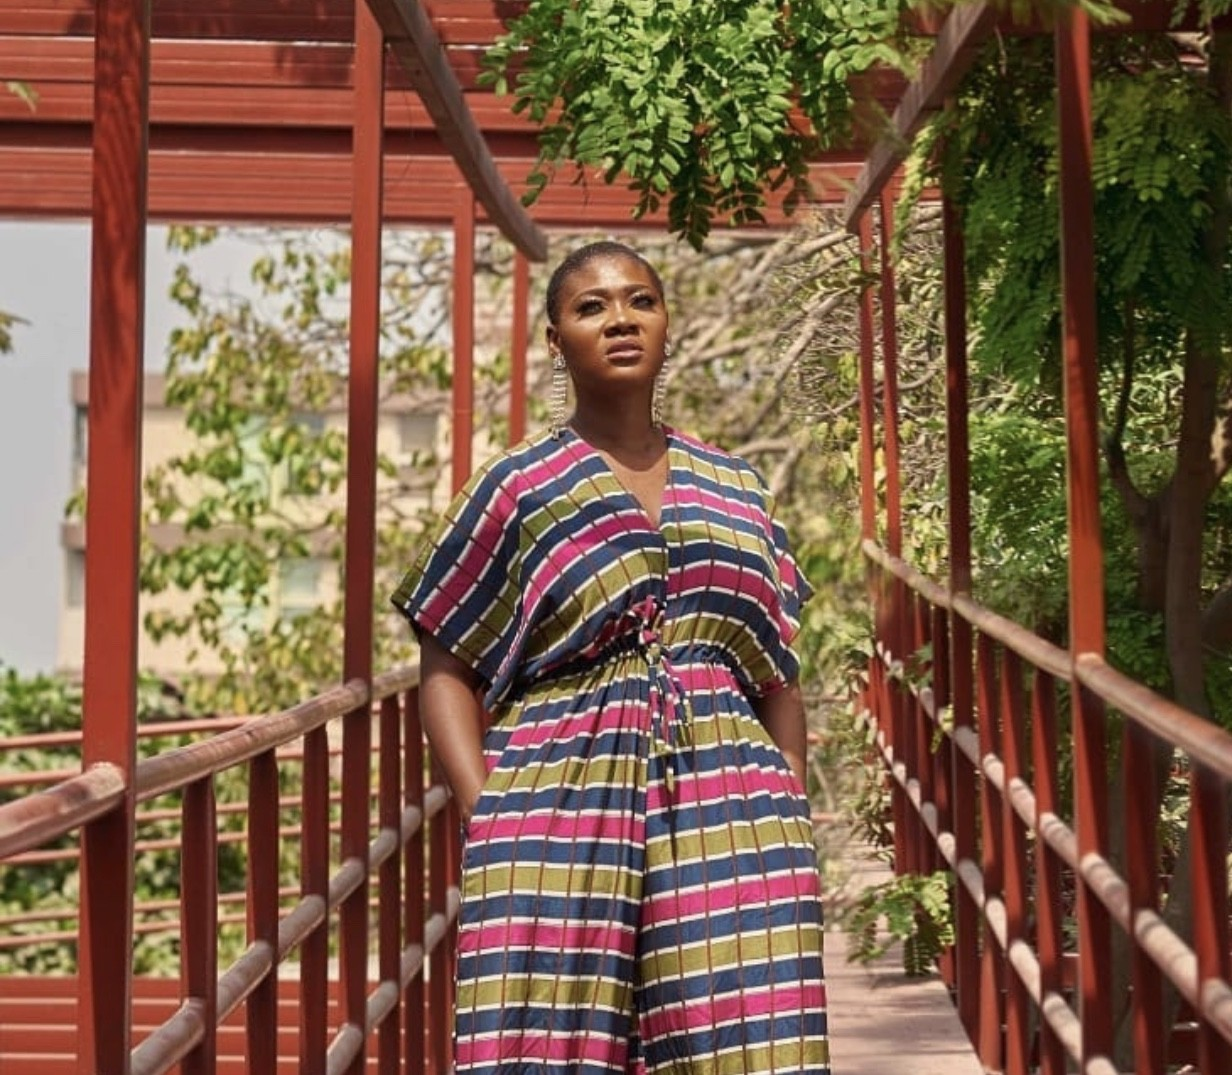 Mercy Johnson shares lovely new photos as she celebrates her birthday today